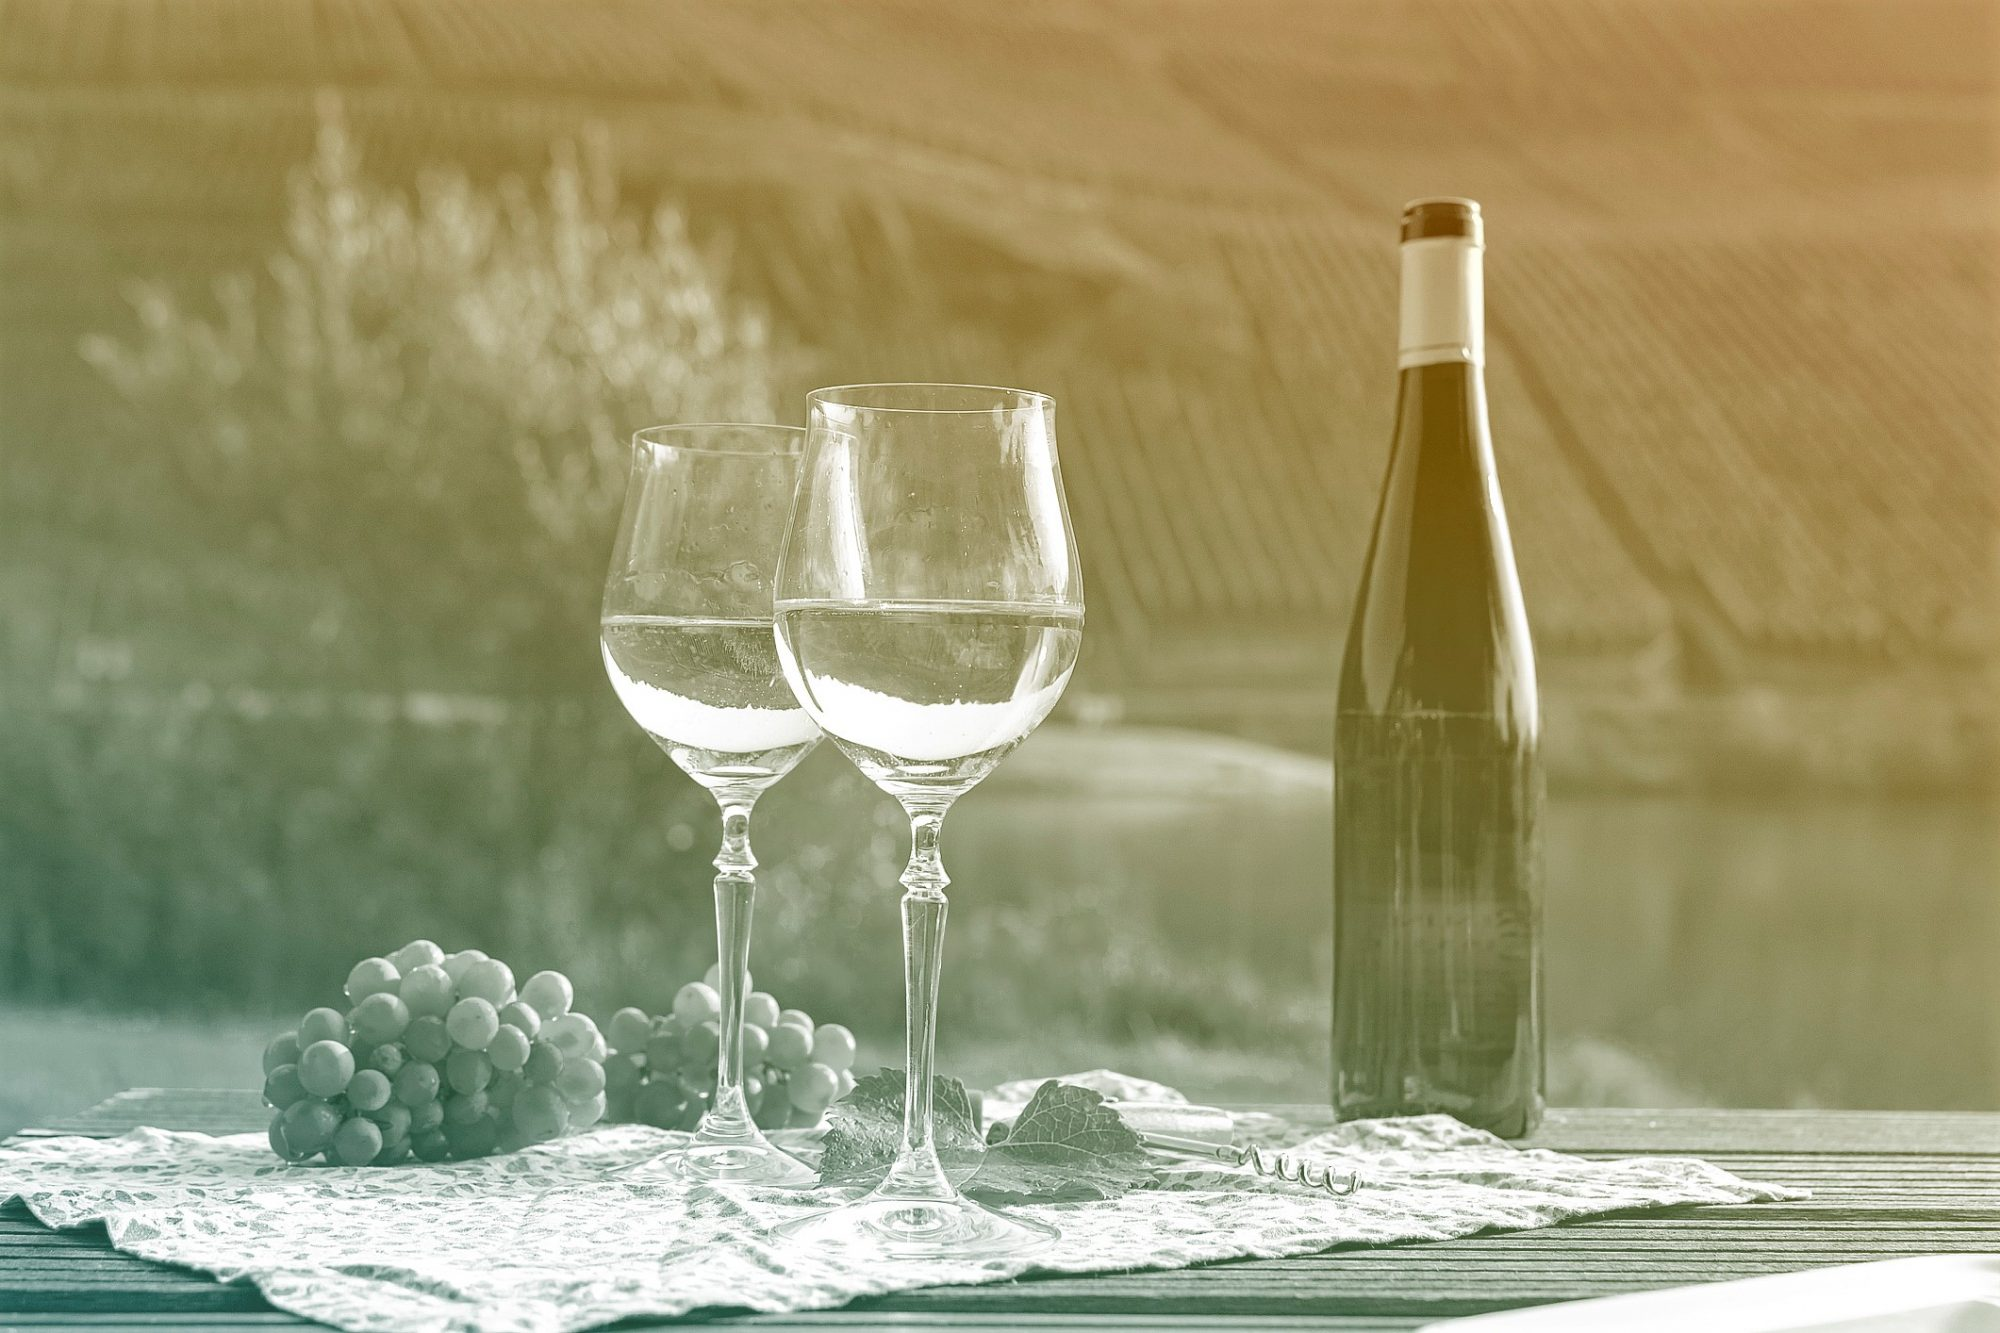 wine bottle, wine glasses, and grapes on table outside